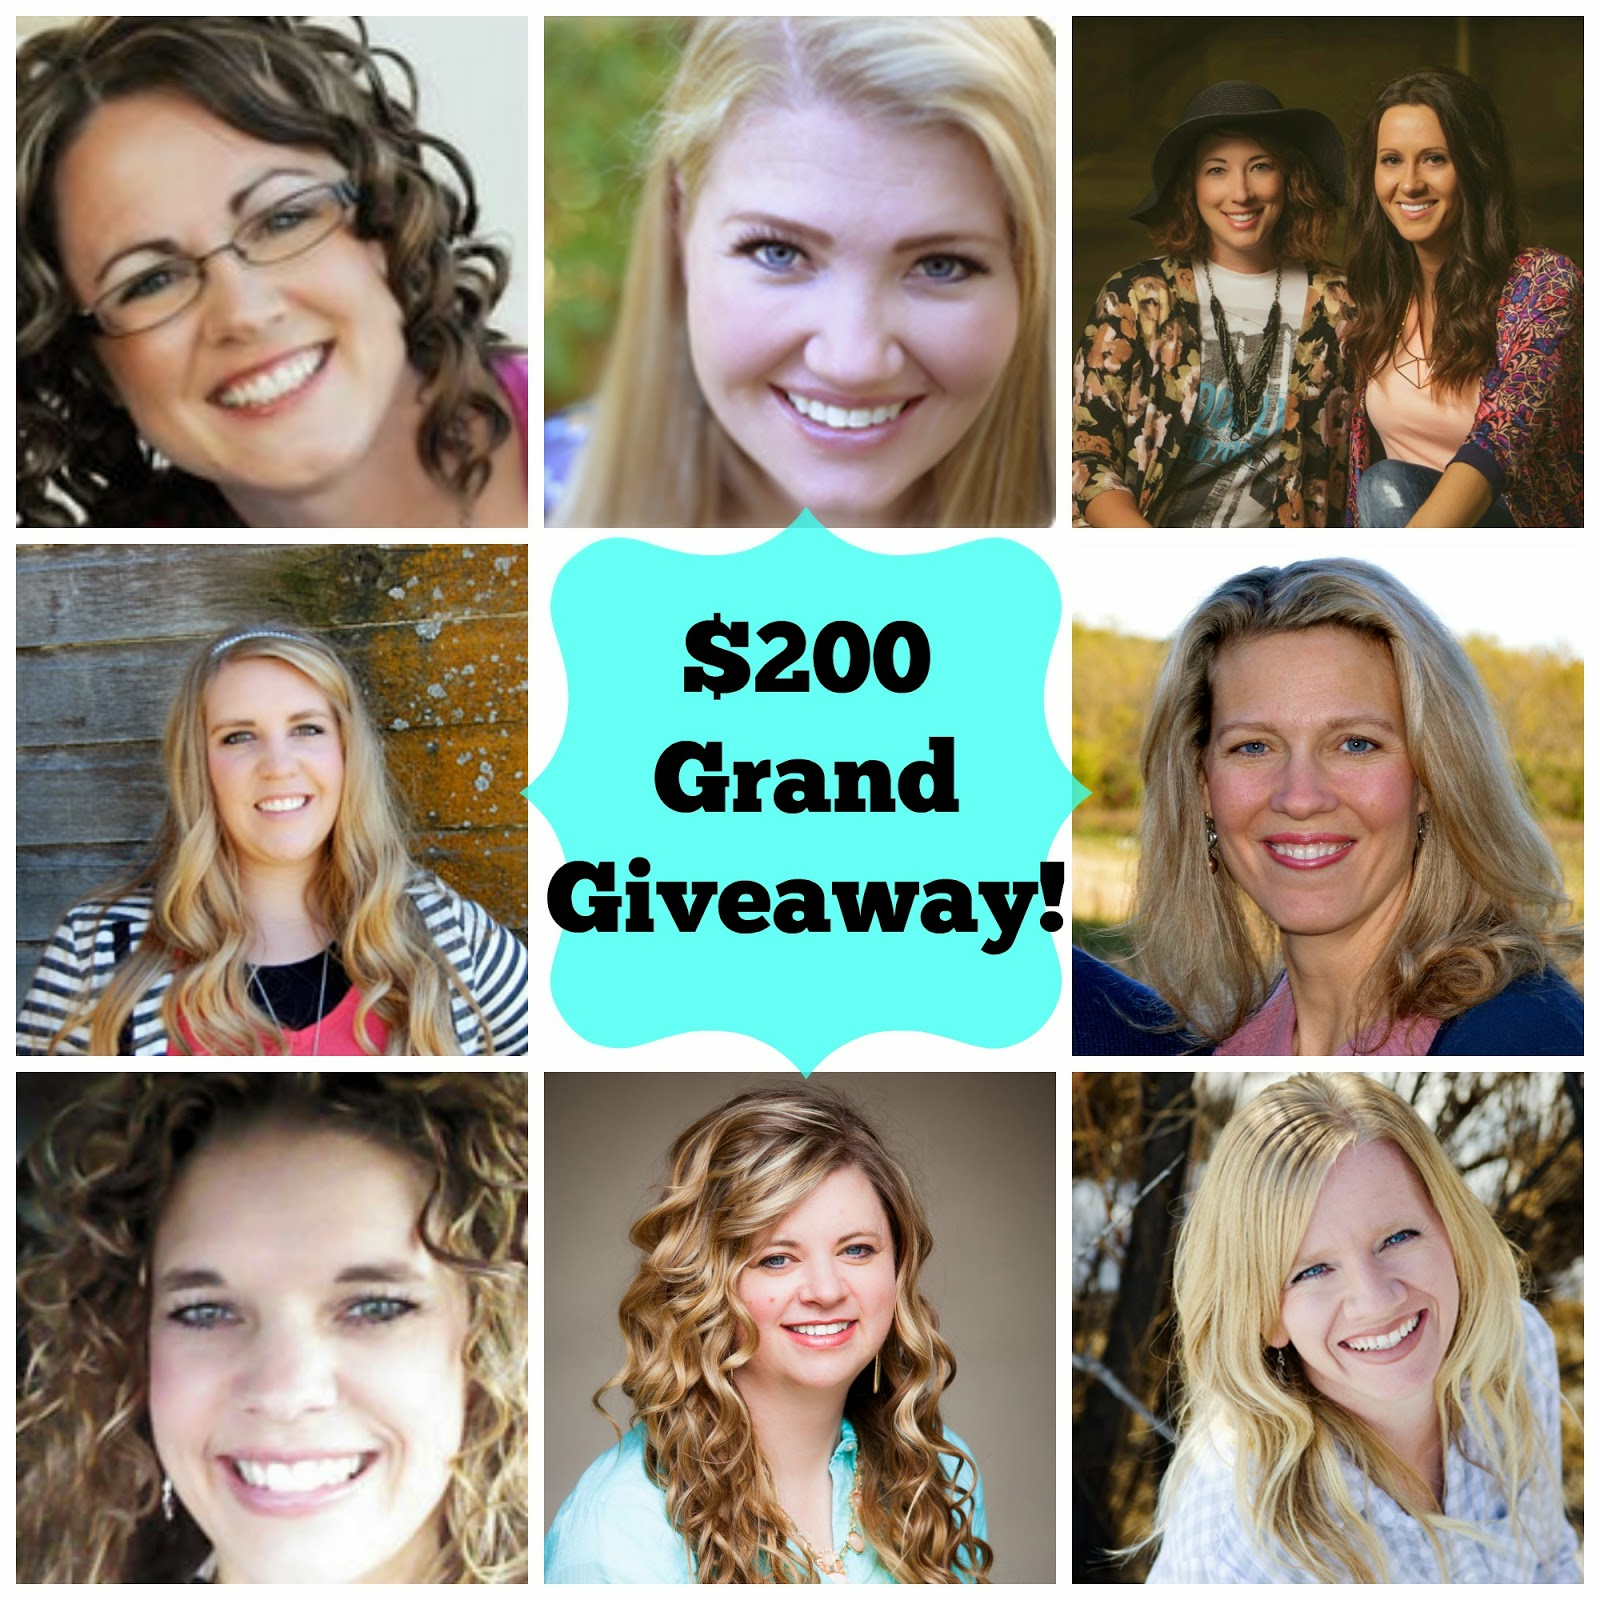 $200.00 Giveaway!!